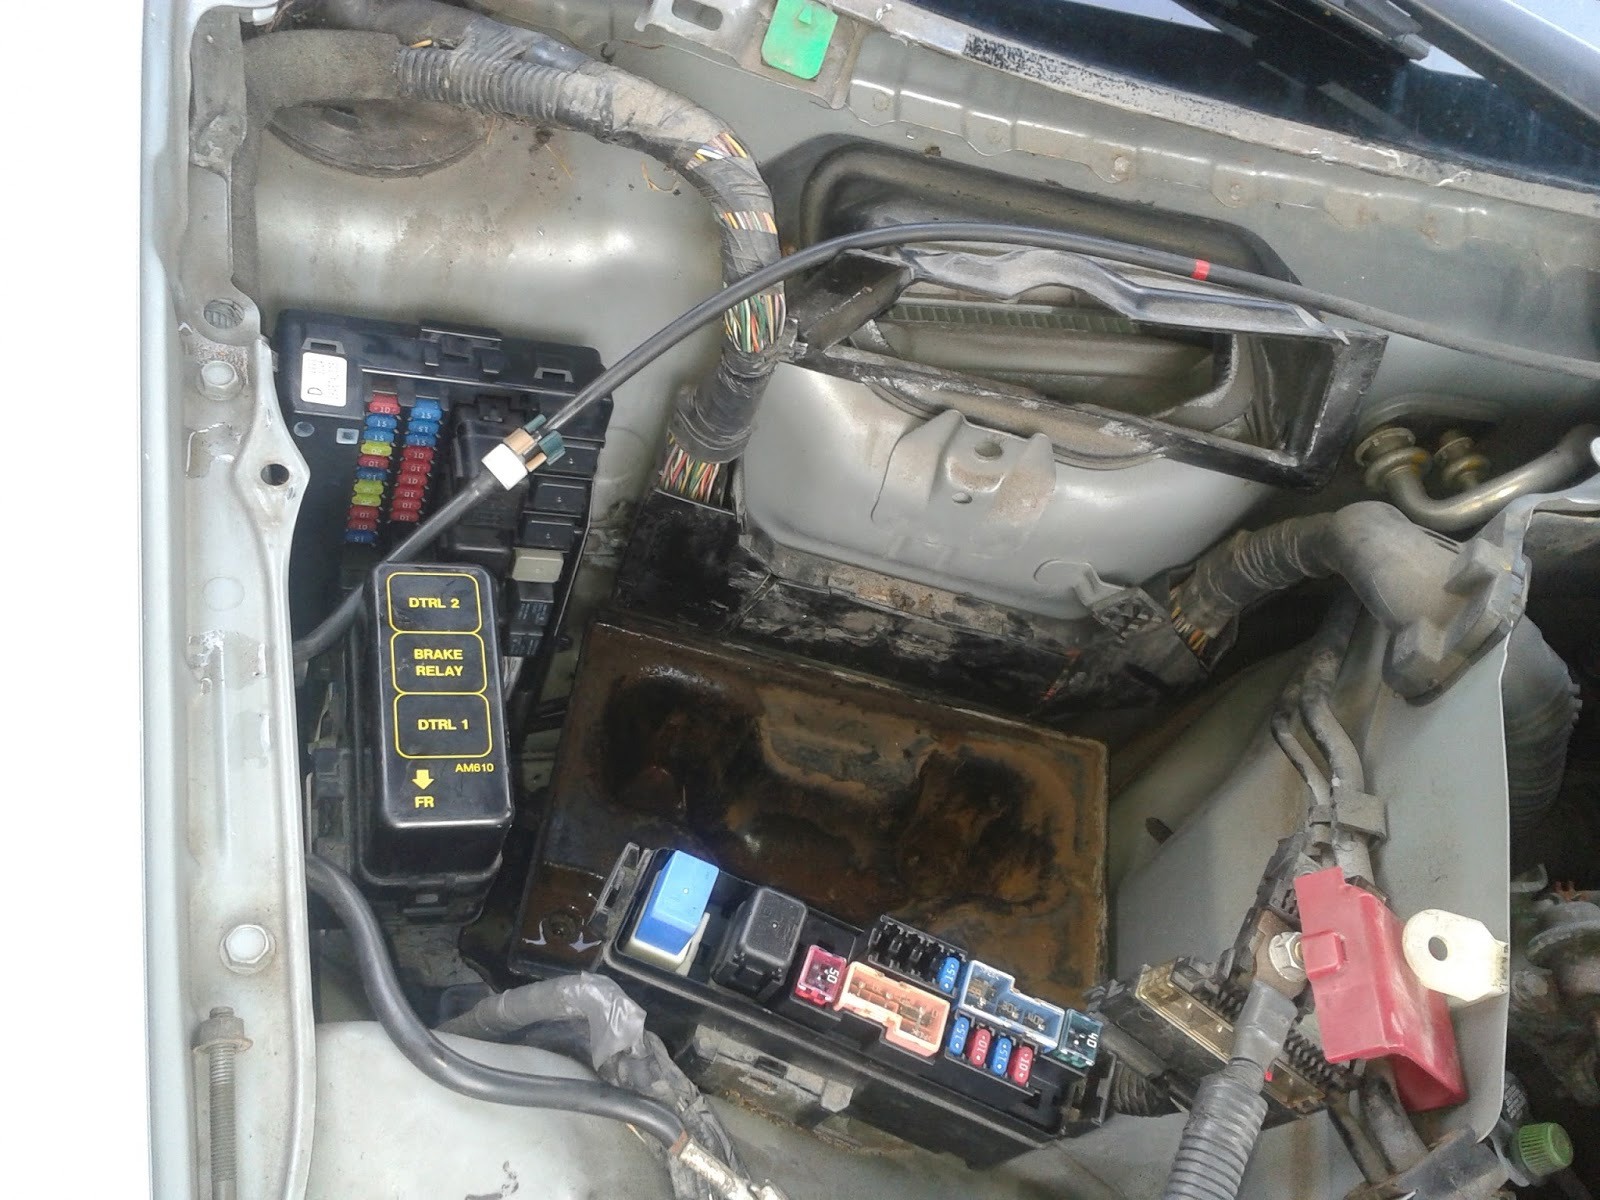 2015 05 27%2B18.55.50 zf inifiniti g35 2003 wet ipdm issue, how to fix it g35 fuse box location at aneh.co